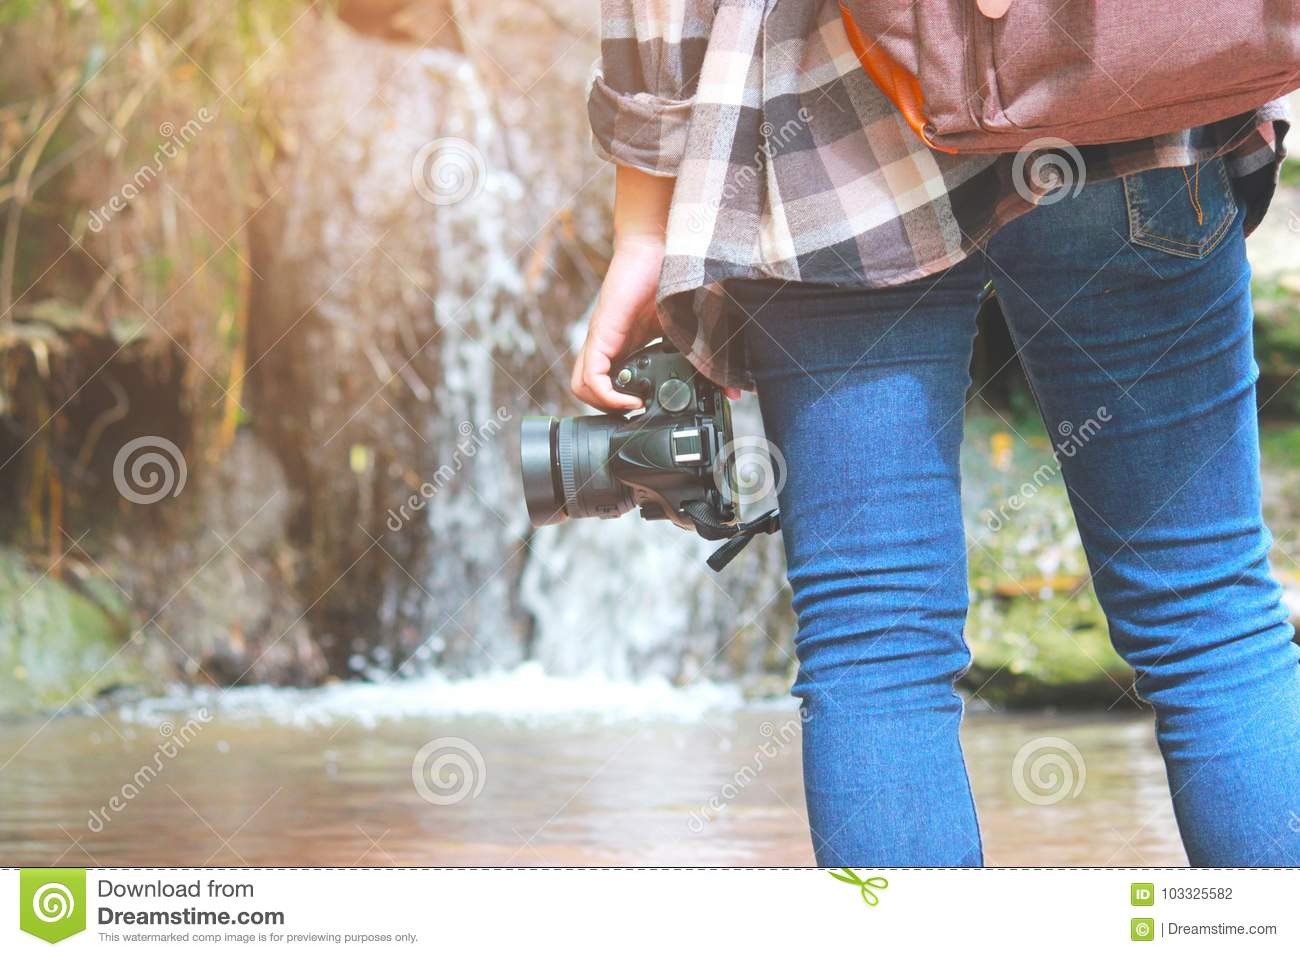 eb78f4dea4eb A women Walking with jeans and sneaker shoes and Waterfall background